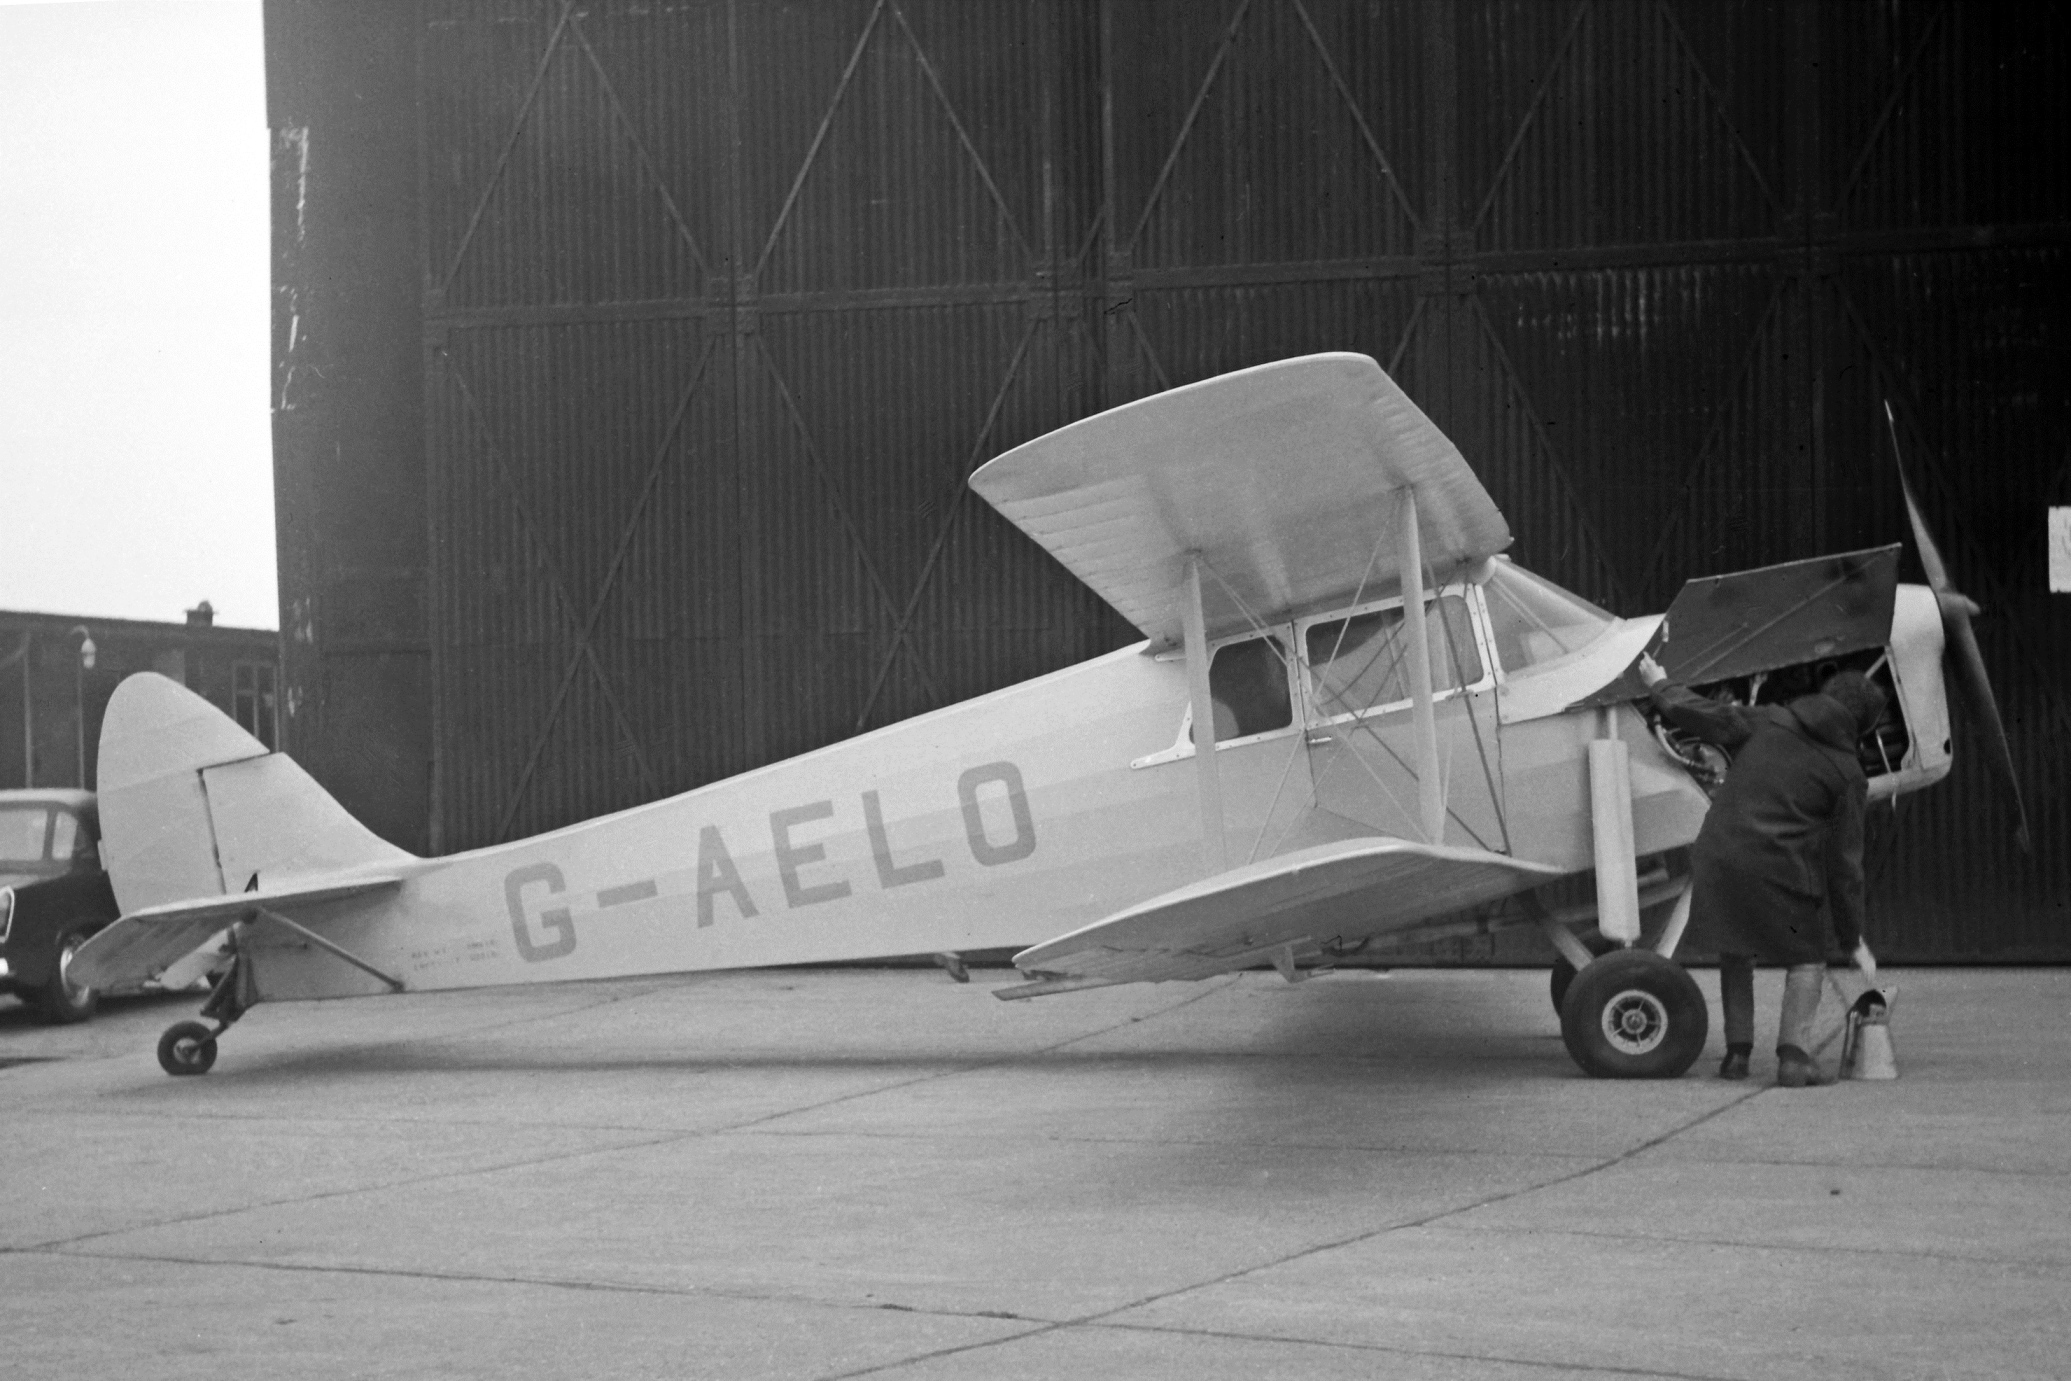 Story Behind the Photo 7: Hornet Moth G-AELO